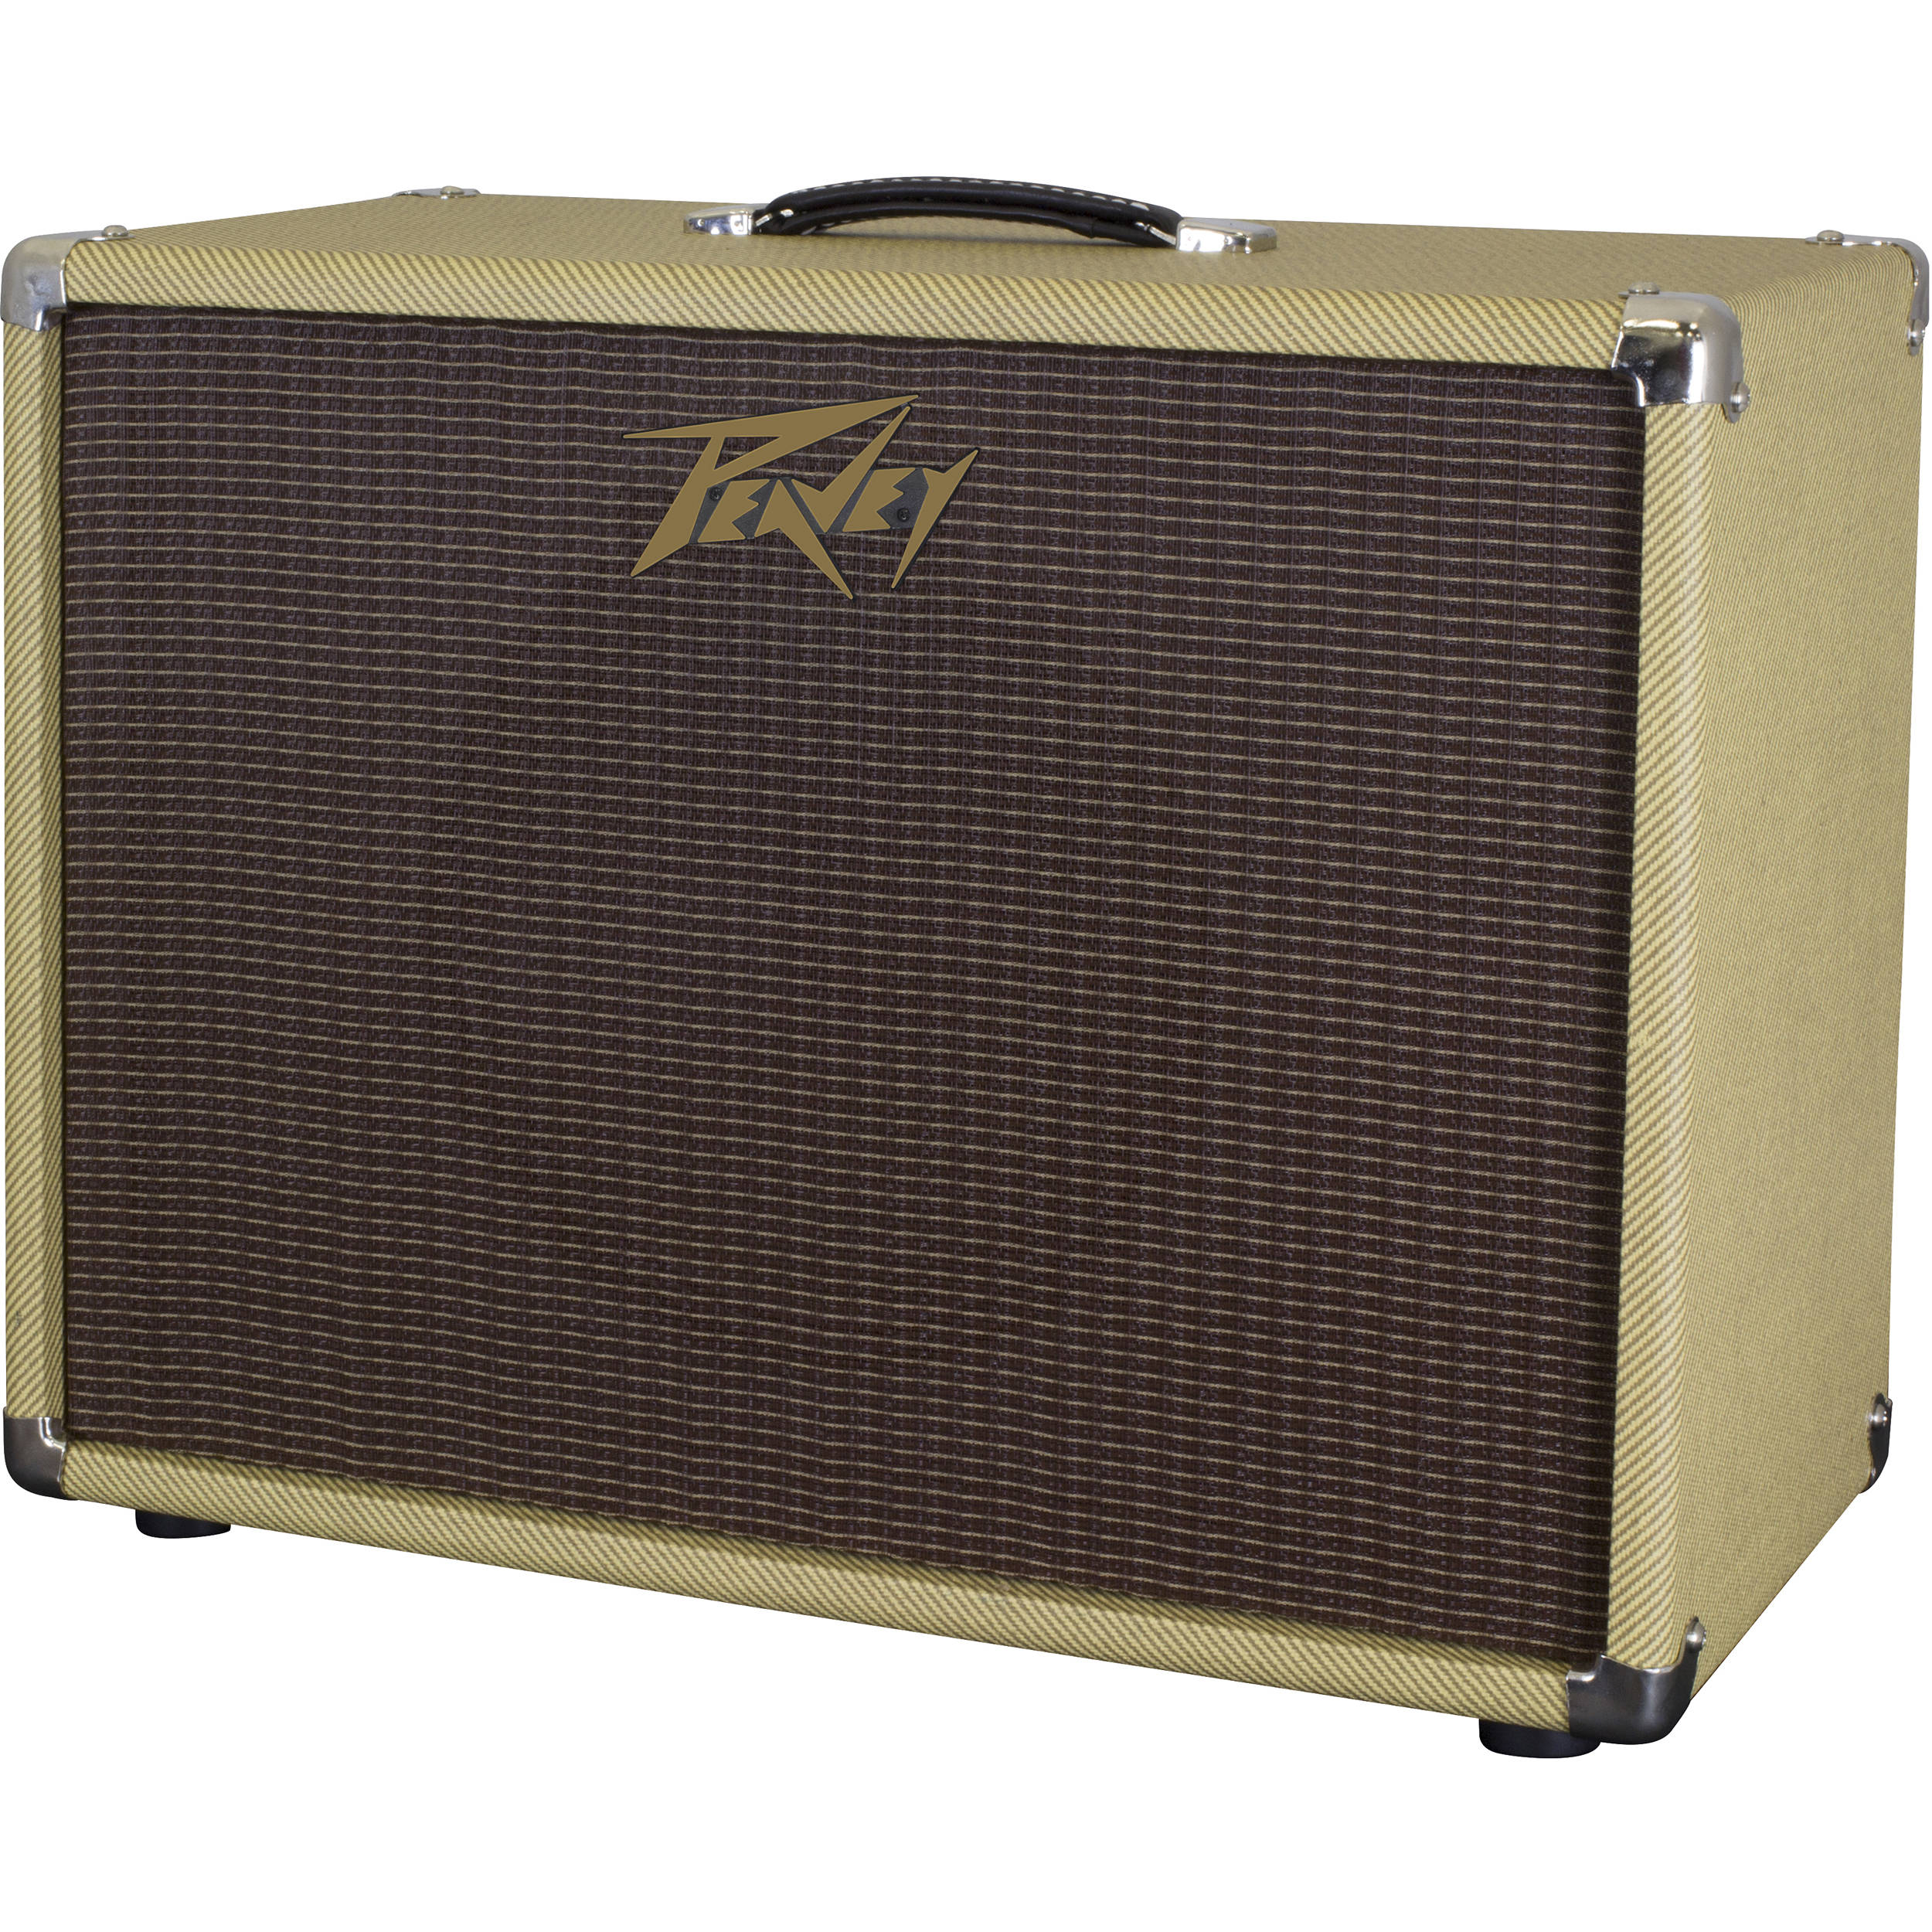 peavey classic 112 c electric guitar cab single 12 speaker cabinet mic stand ebay. Black Bedroom Furniture Sets. Home Design Ideas